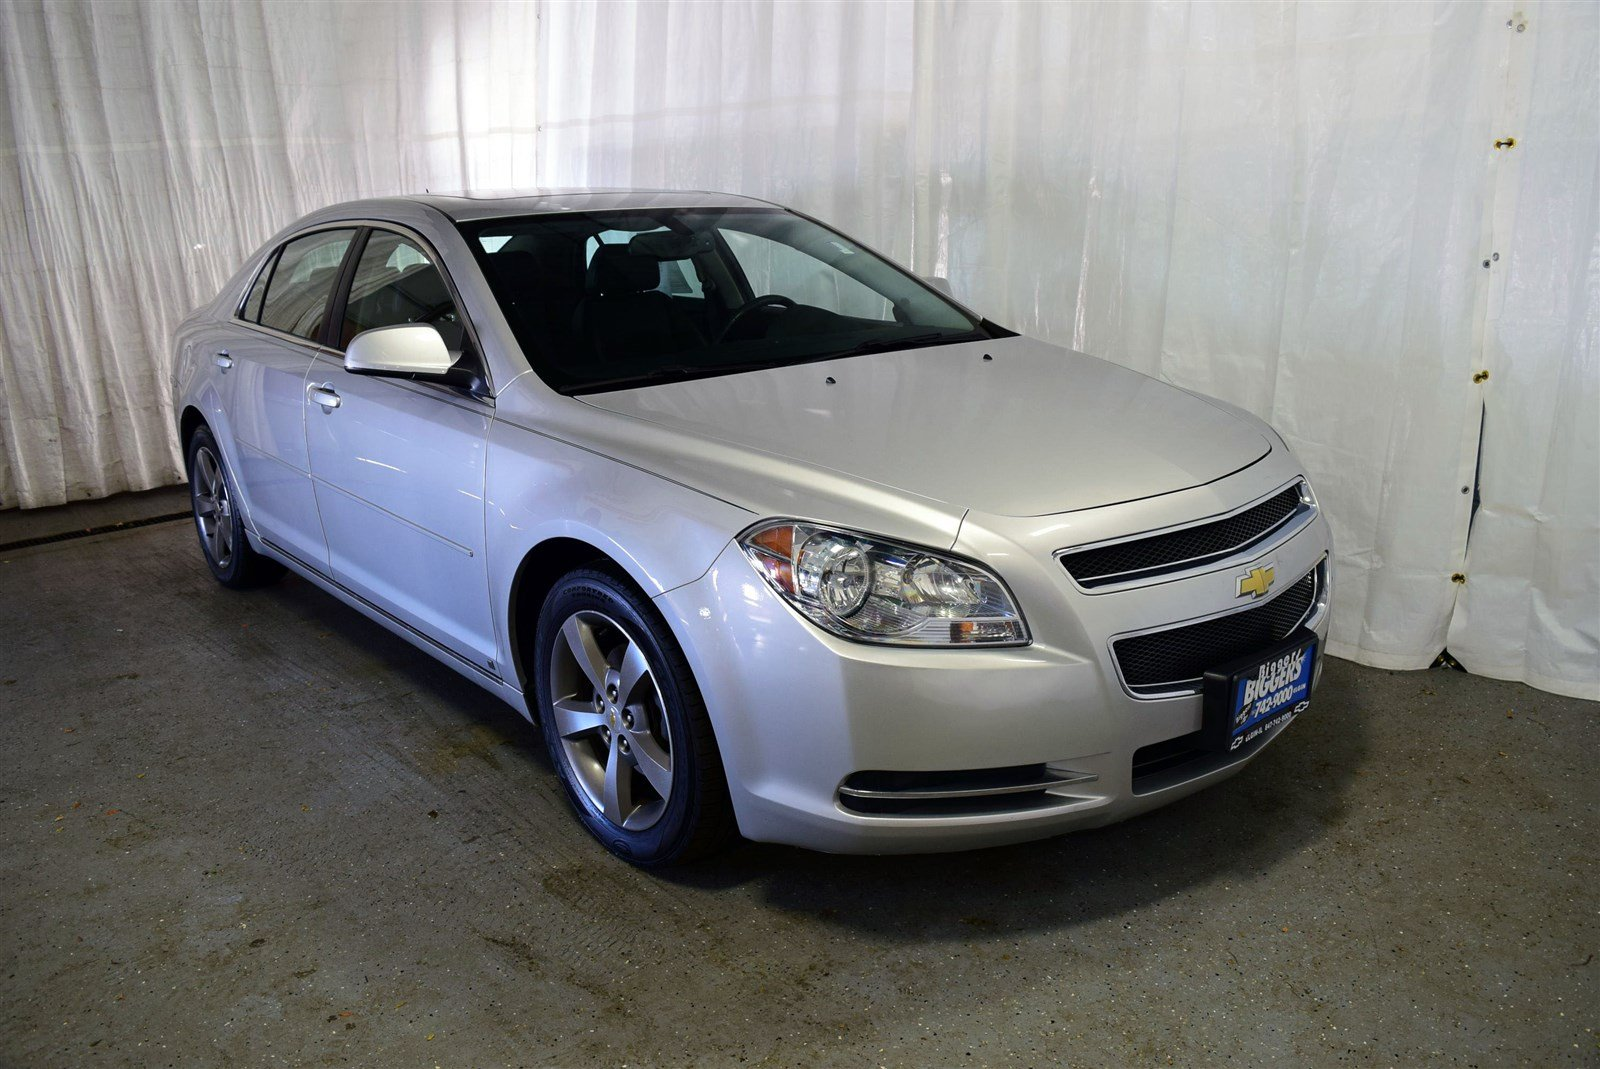 used 2009 chevrolet malibu lt 4d sedan near schaumburg. Black Bedroom Furniture Sets. Home Design Ideas